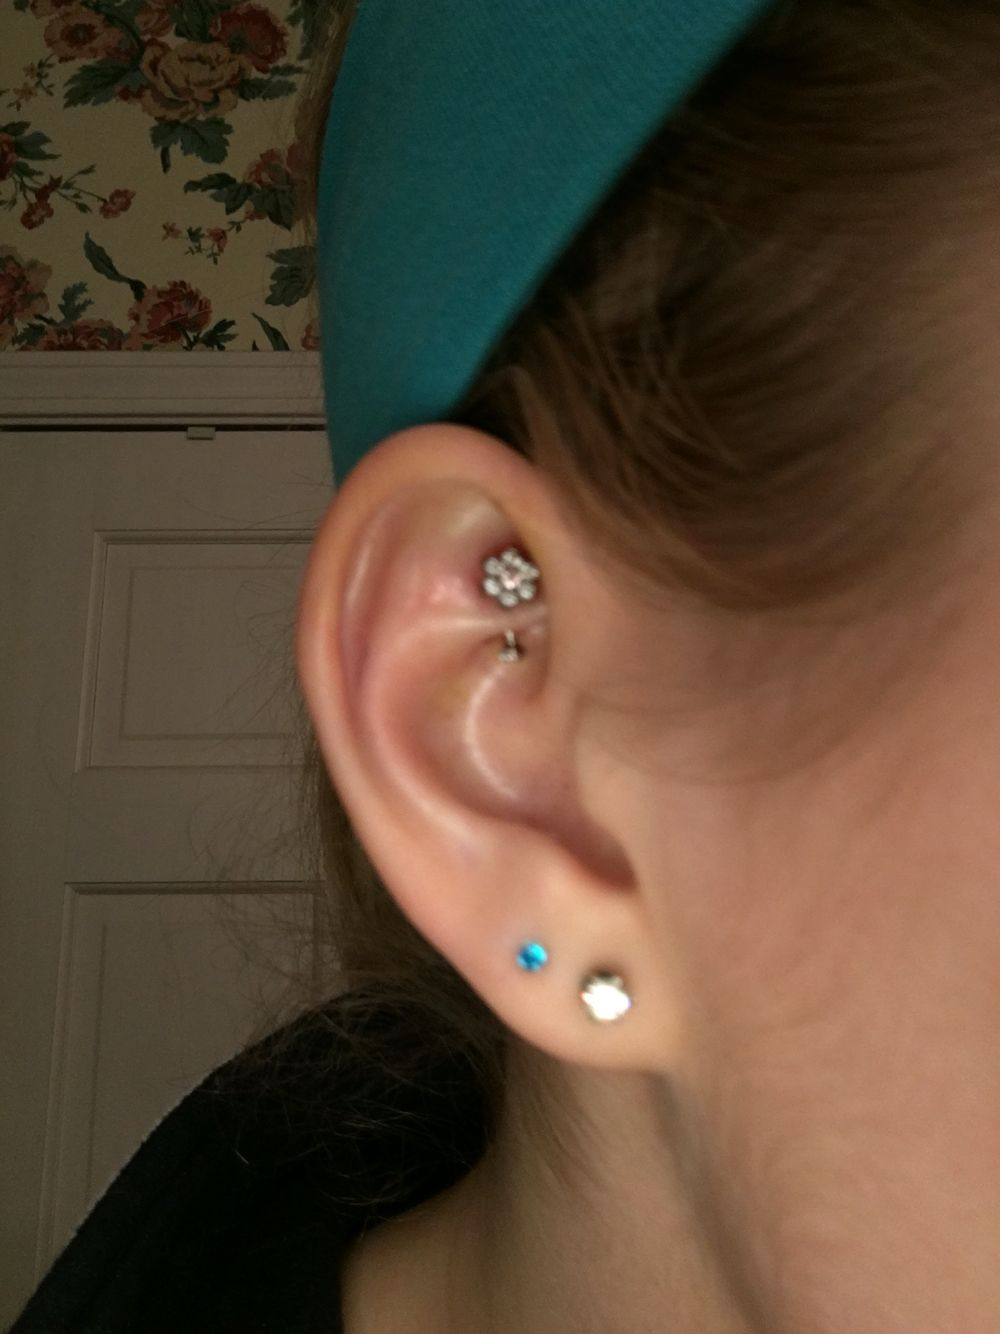 My New Rook Piercing This One Was Painful After The First Week But Barely Hurt Anymore